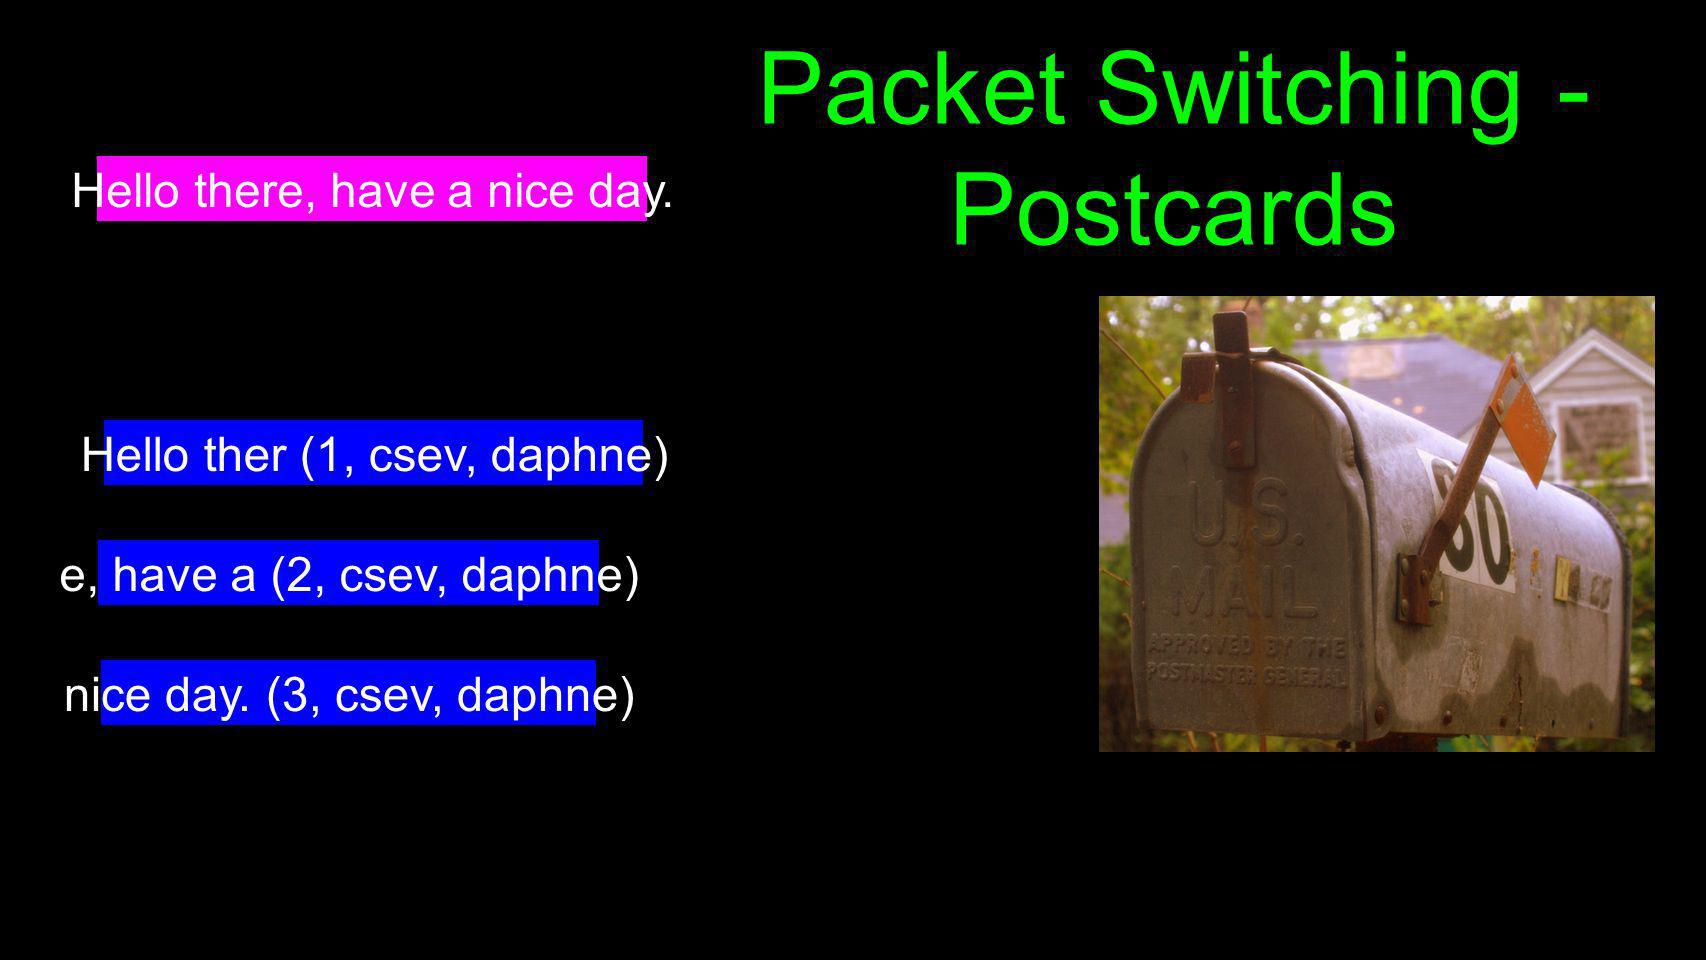 Packet Switching - Postcards Hello there, have a nice day. Hello ther (1, csev, daphne) e, have a (2, csev, daphne) nice day. (3, csev, daphne)